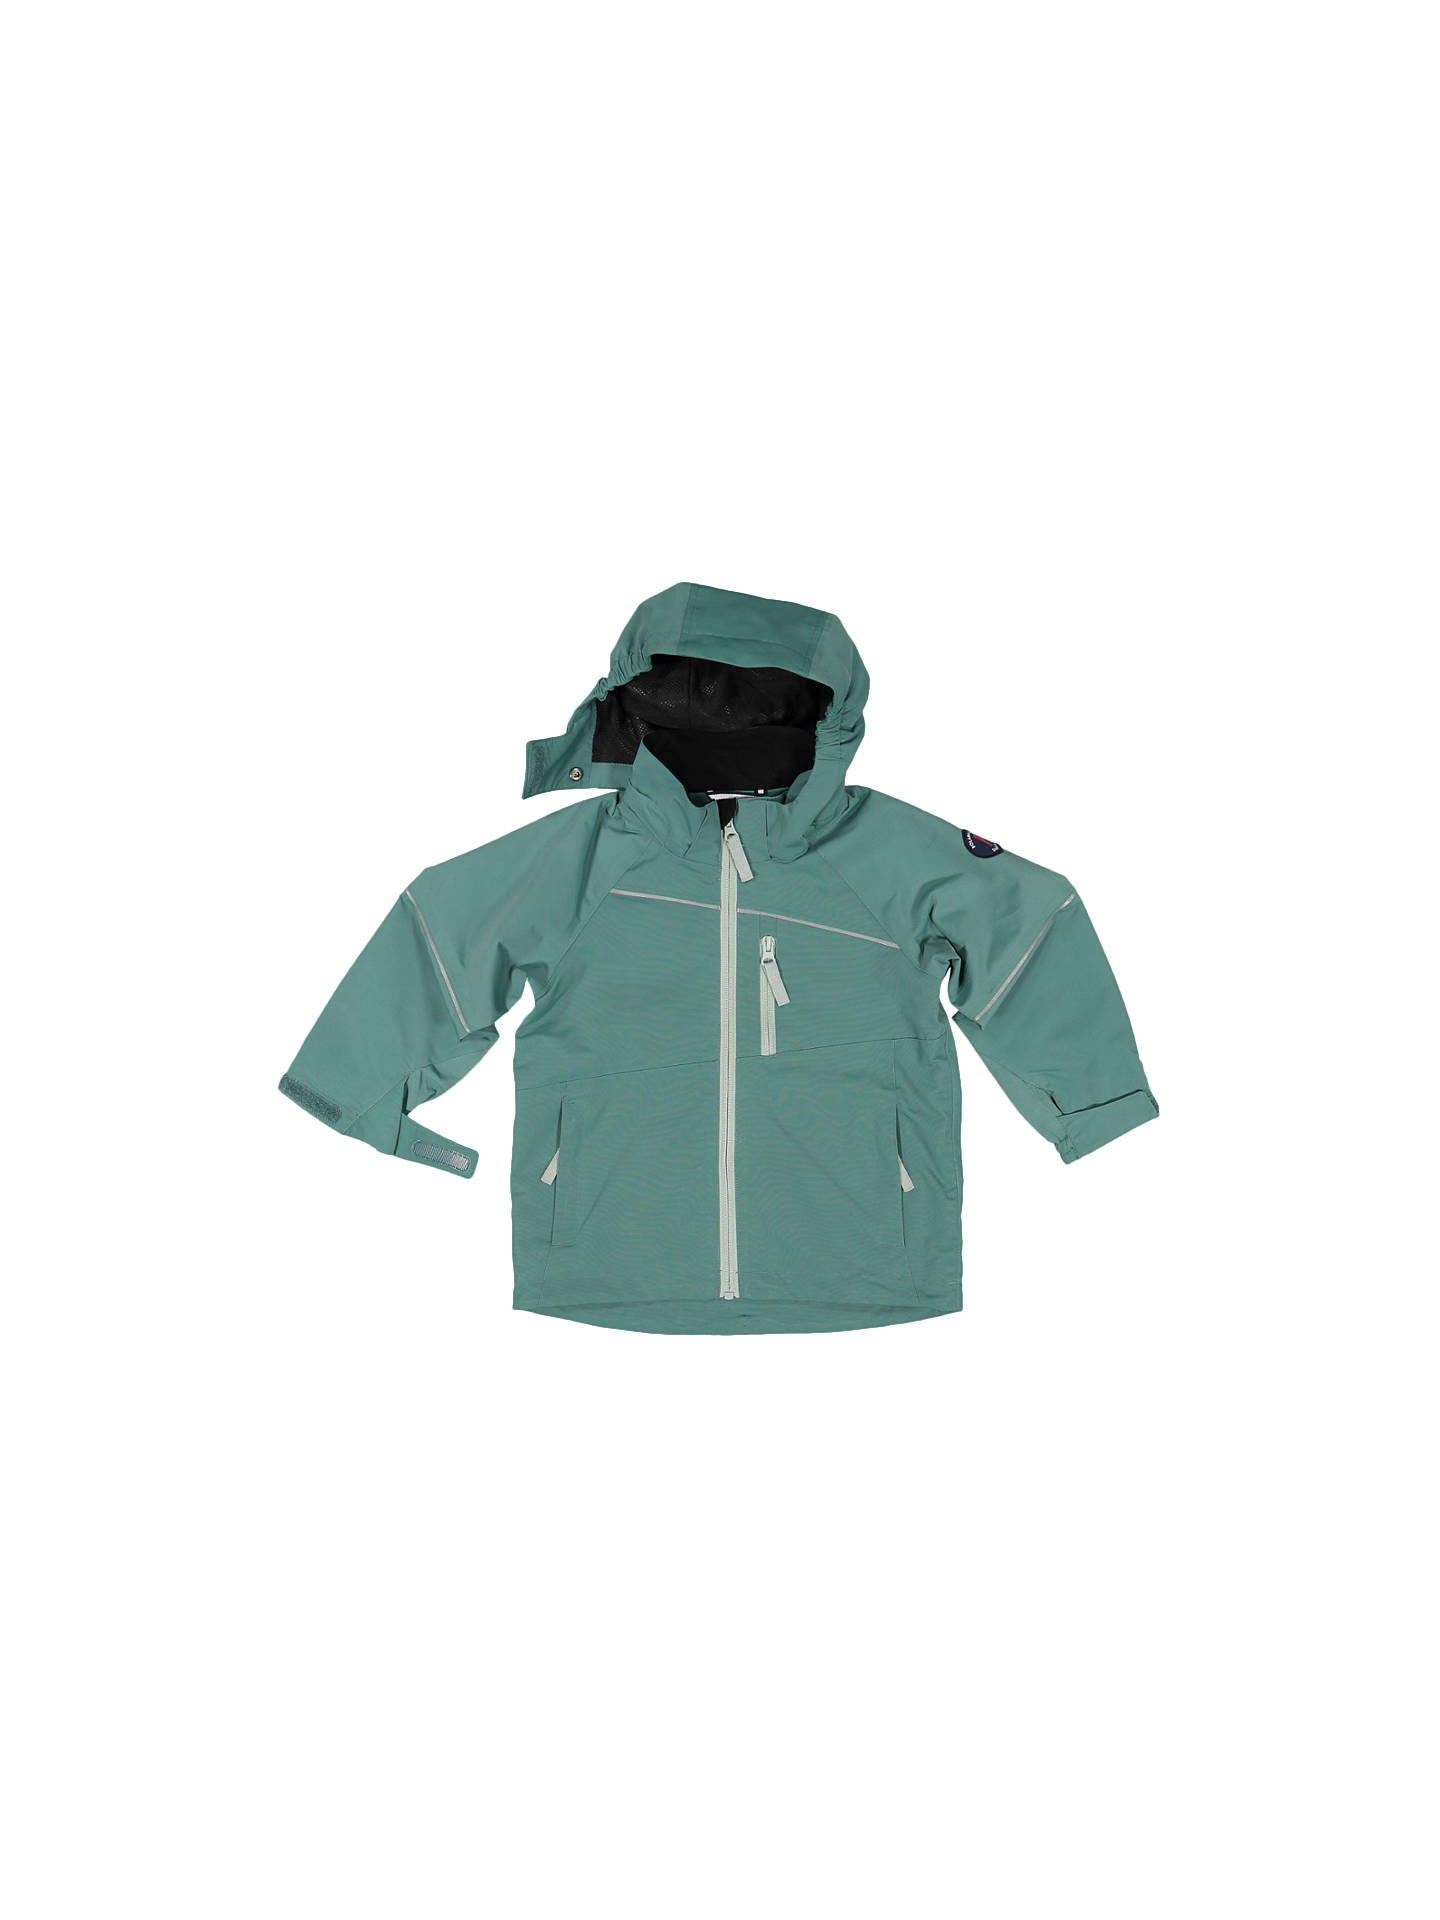 ee1e2845a Polarn O. Pyret Children s Shell Coat